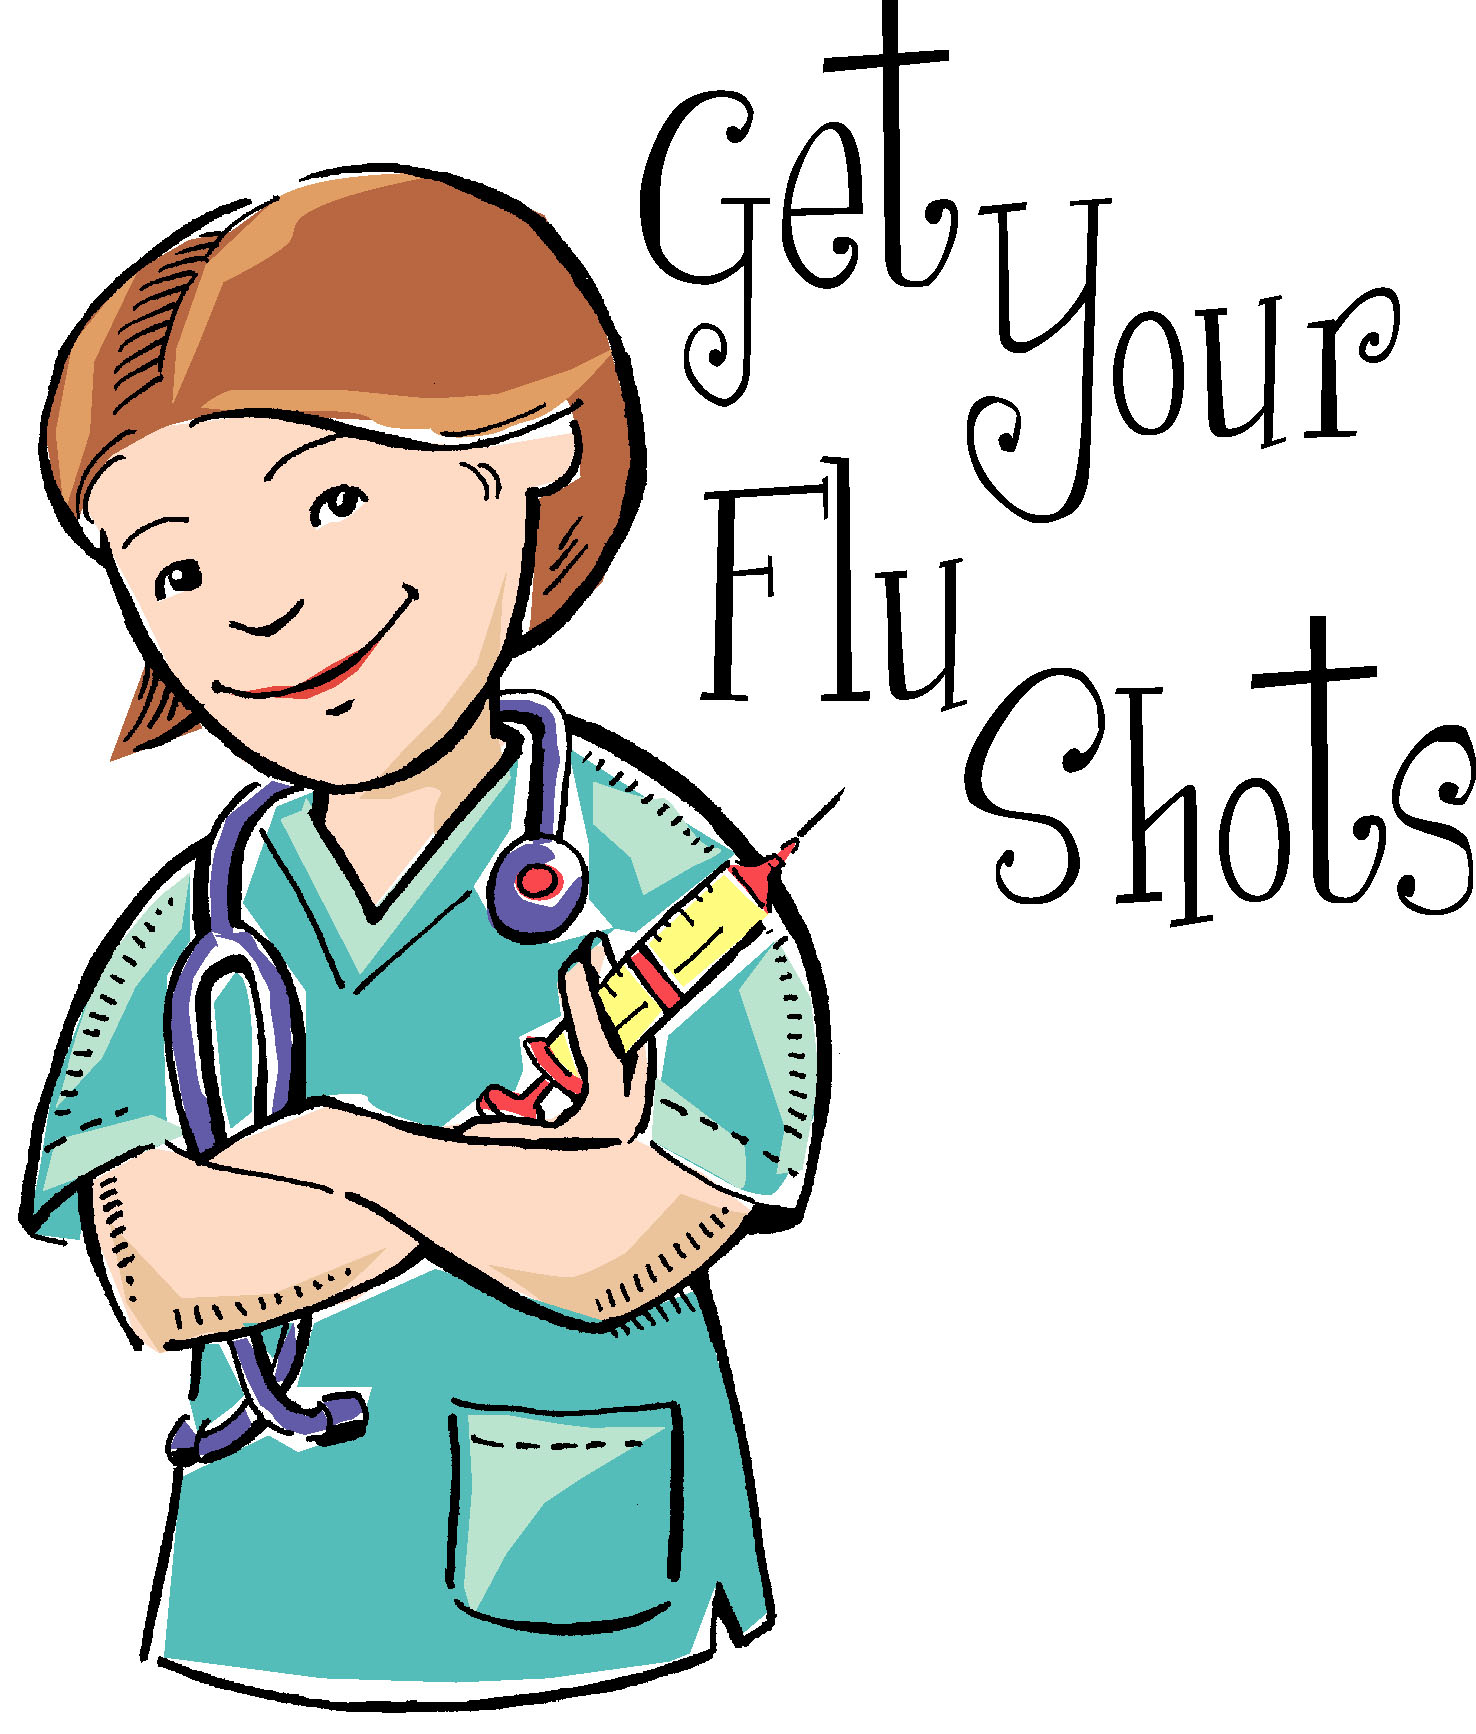 Higher flu shots reduces the risk of influenza in elderly, says a new study